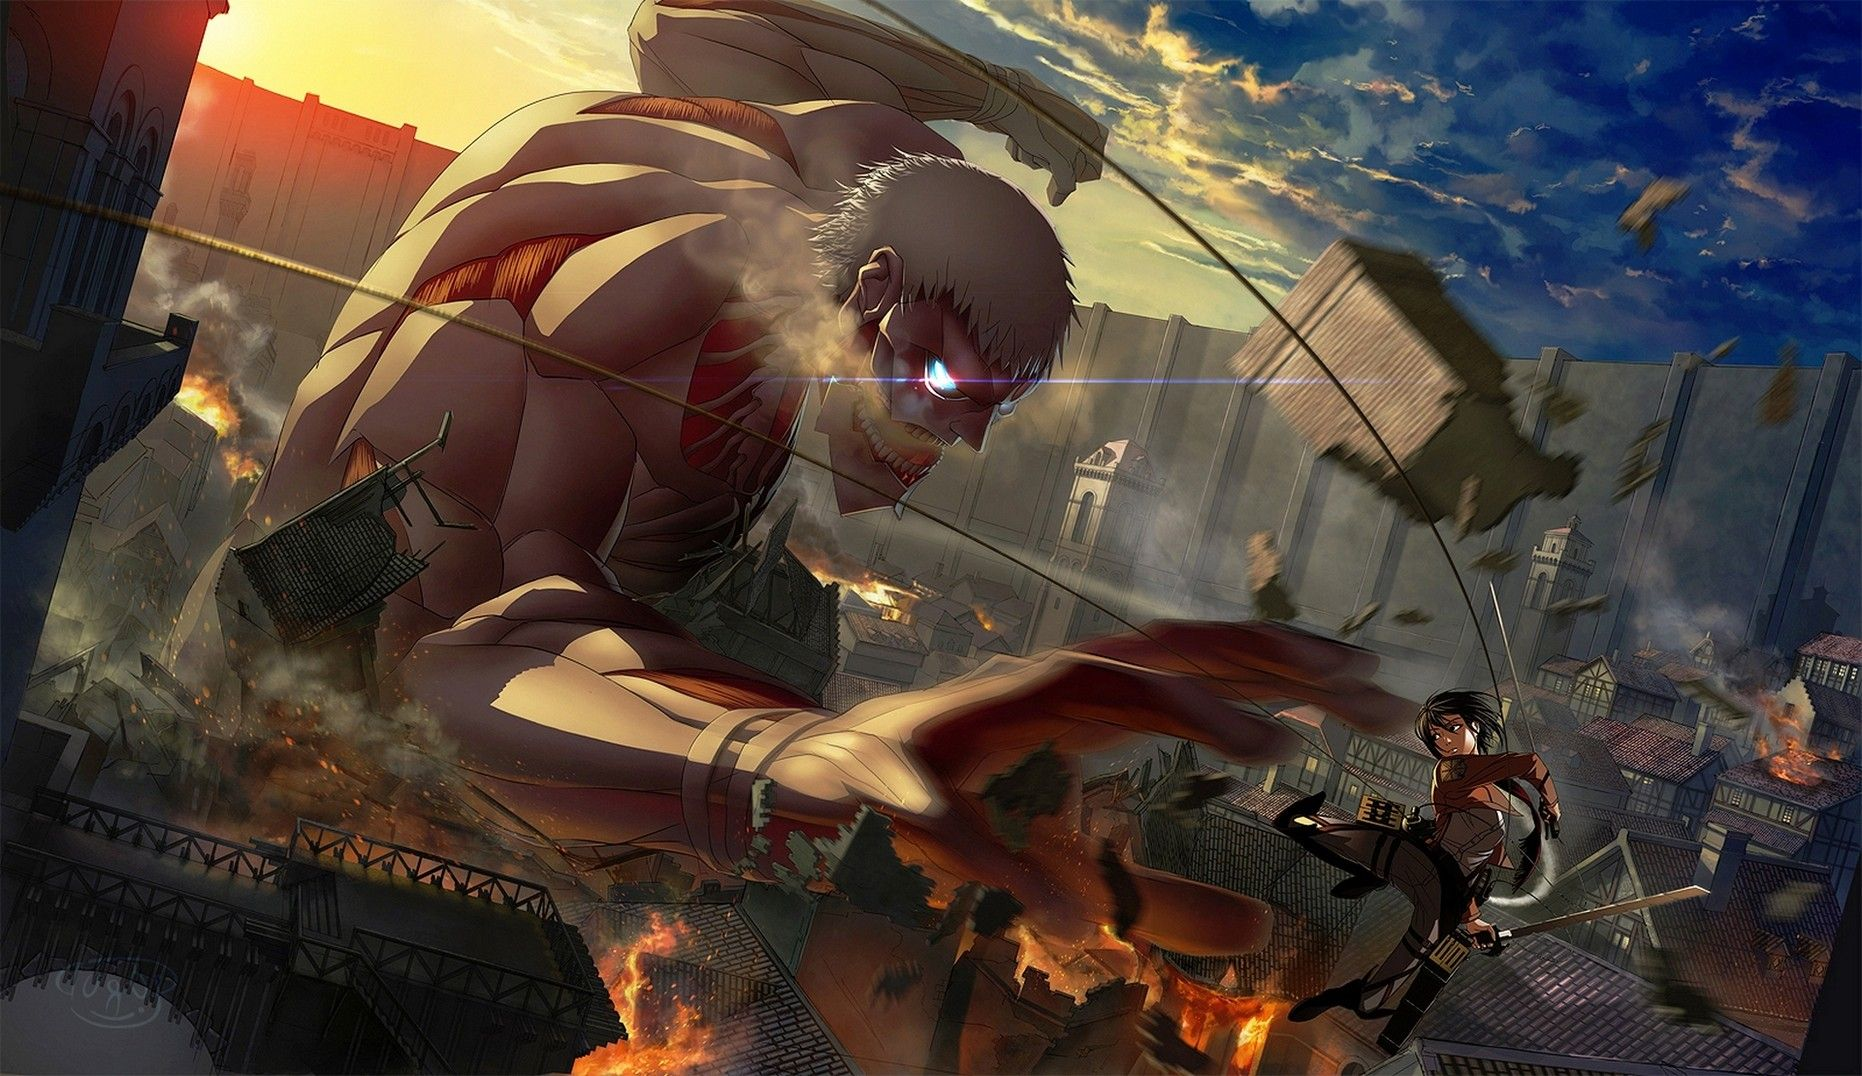 Shingeki No Kyojin Hd Desktop Wallpaper High Definition